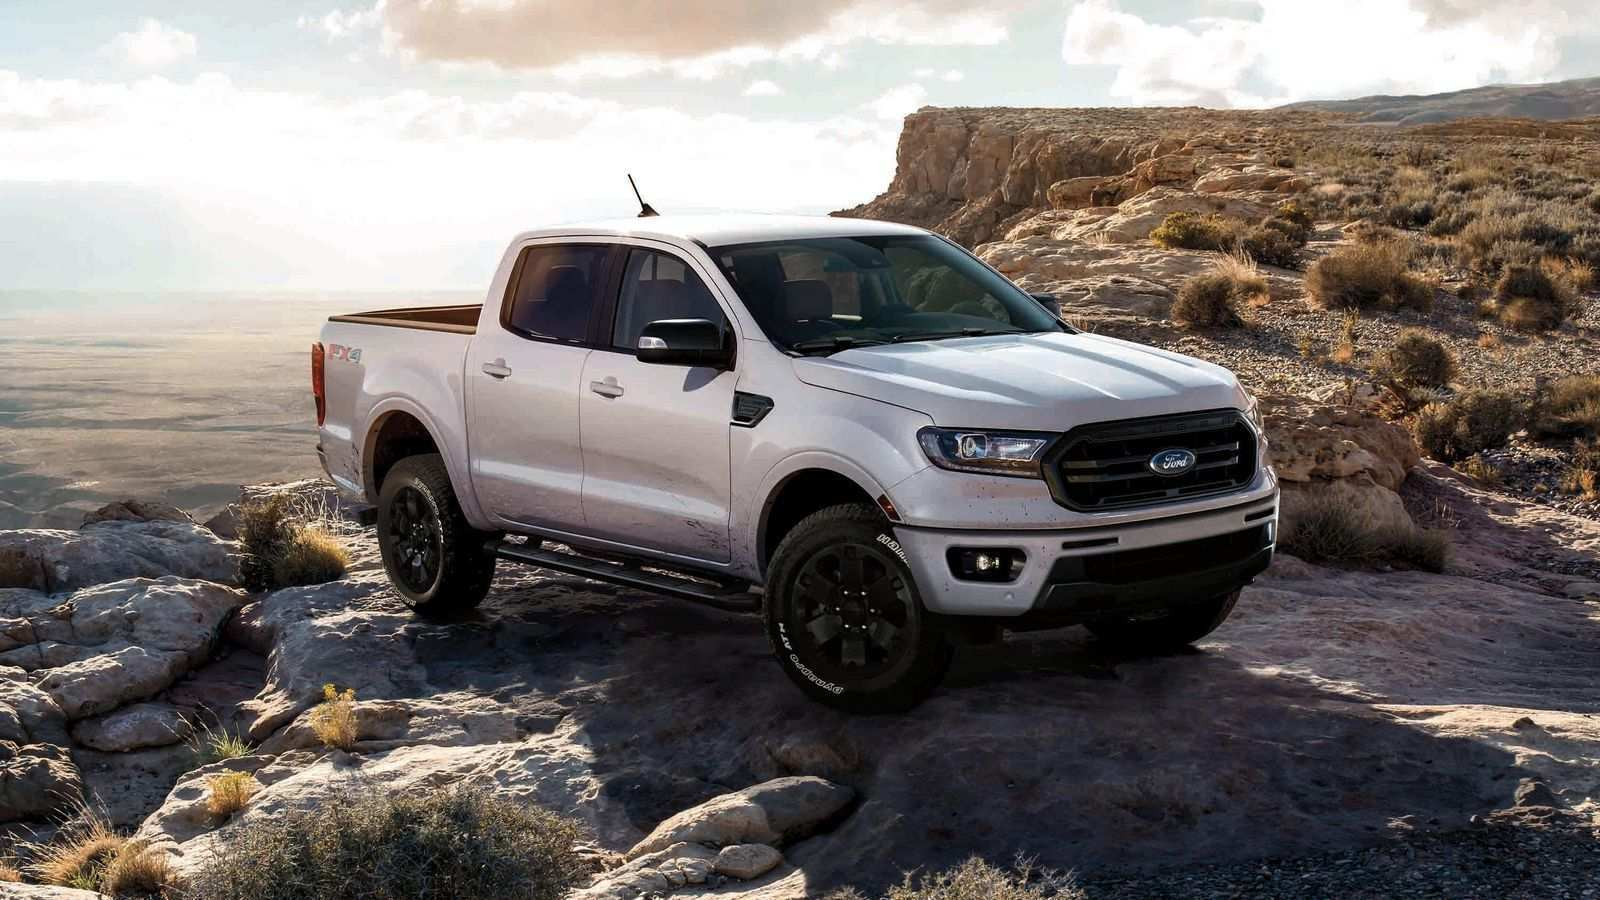 91 All New 2019 Ford Ranger Price And Review